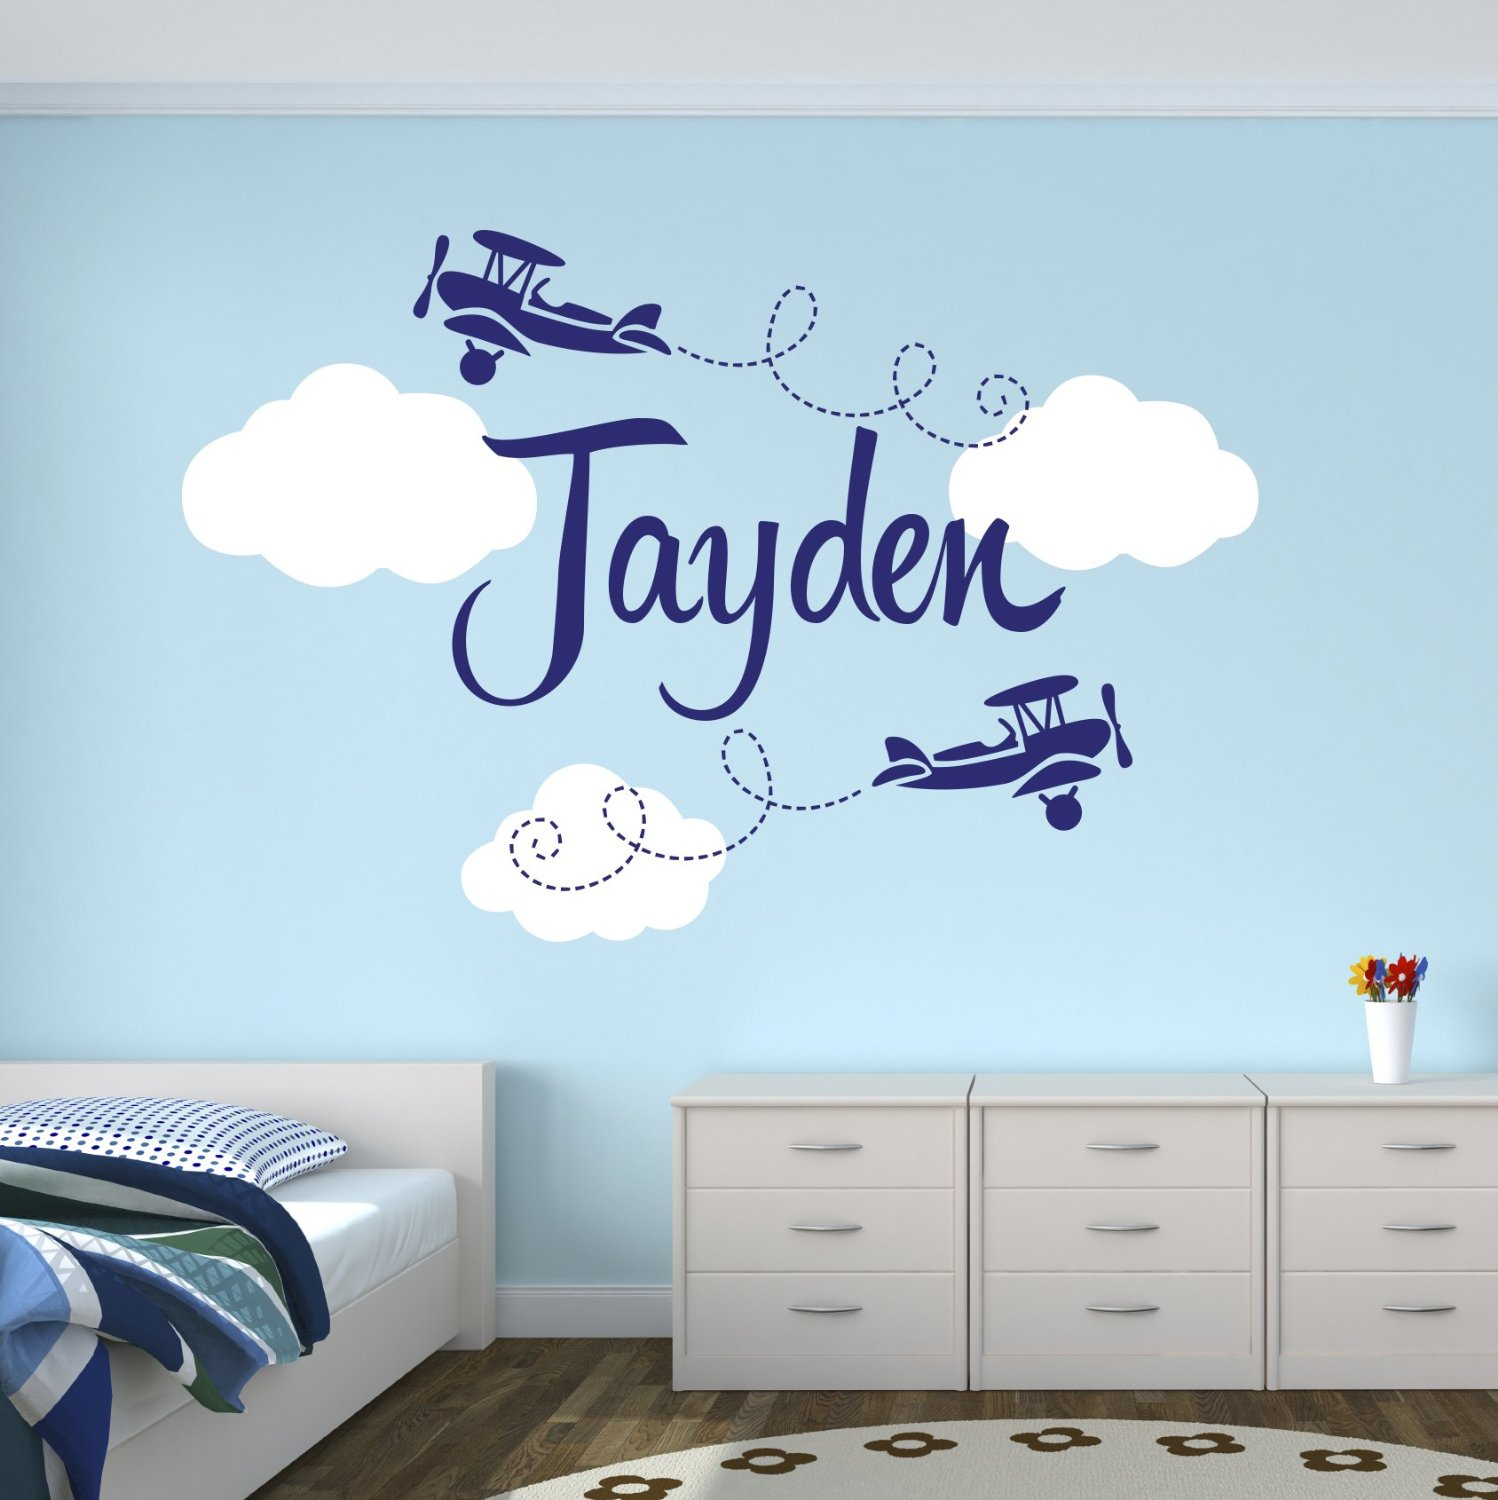 Personalized Airplane Name Clouds Decal Nursery Decor Home Decoration Kids Children Room Vinyl Wall Sticker A 90